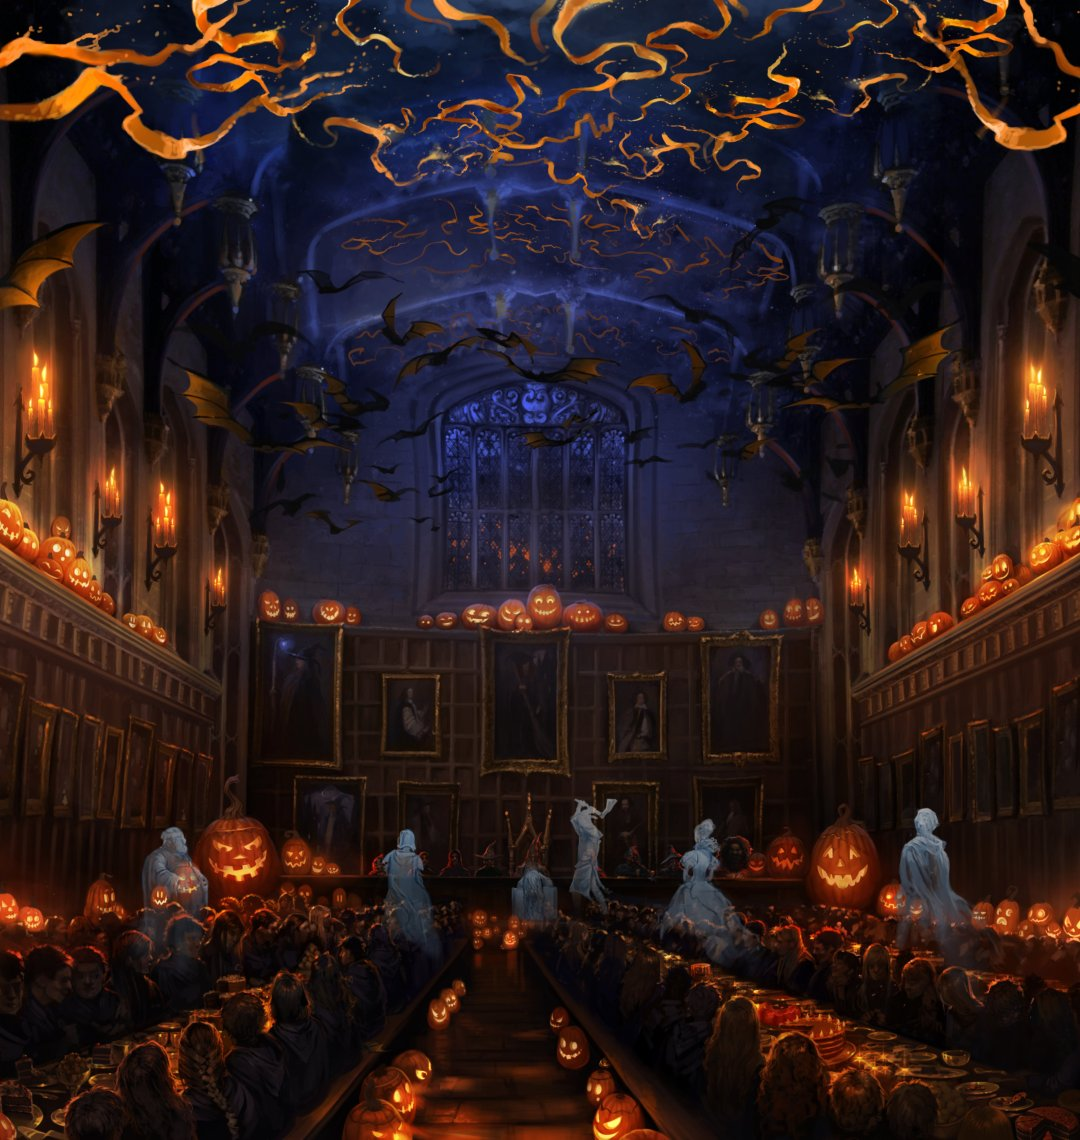 The Great Hall at Halloween with the ghosts